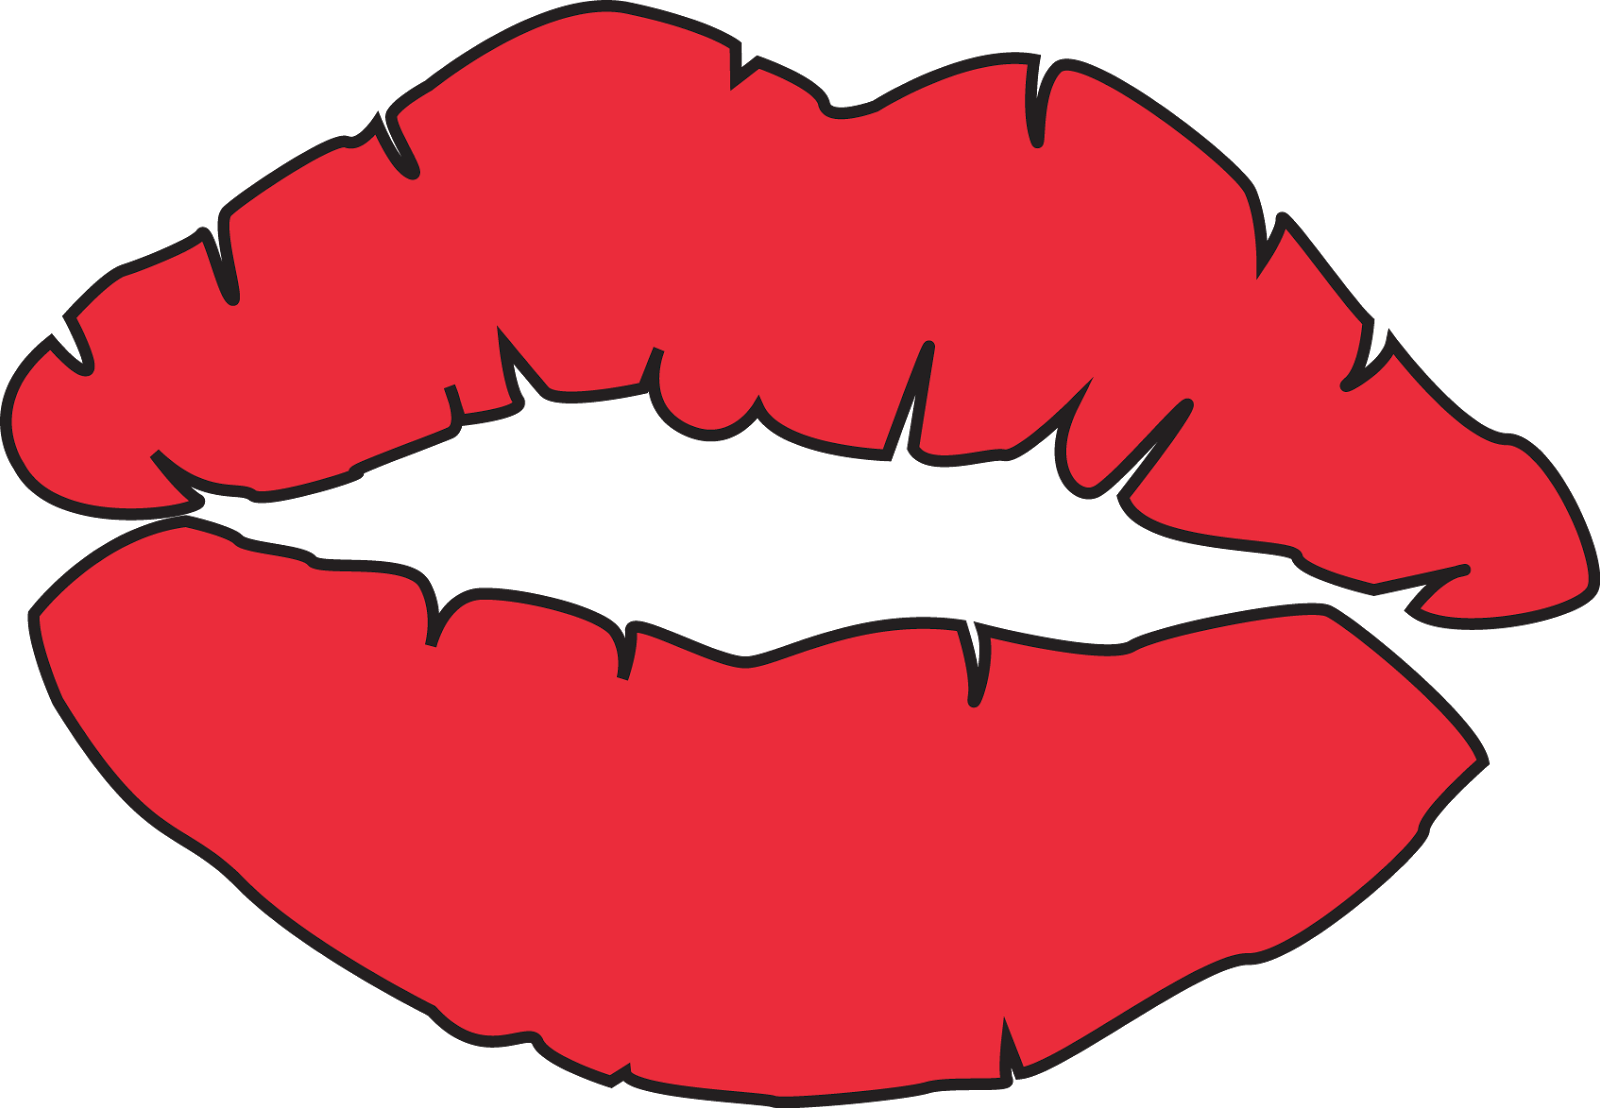 Tongue clip colouring page. Free lips coloring pages